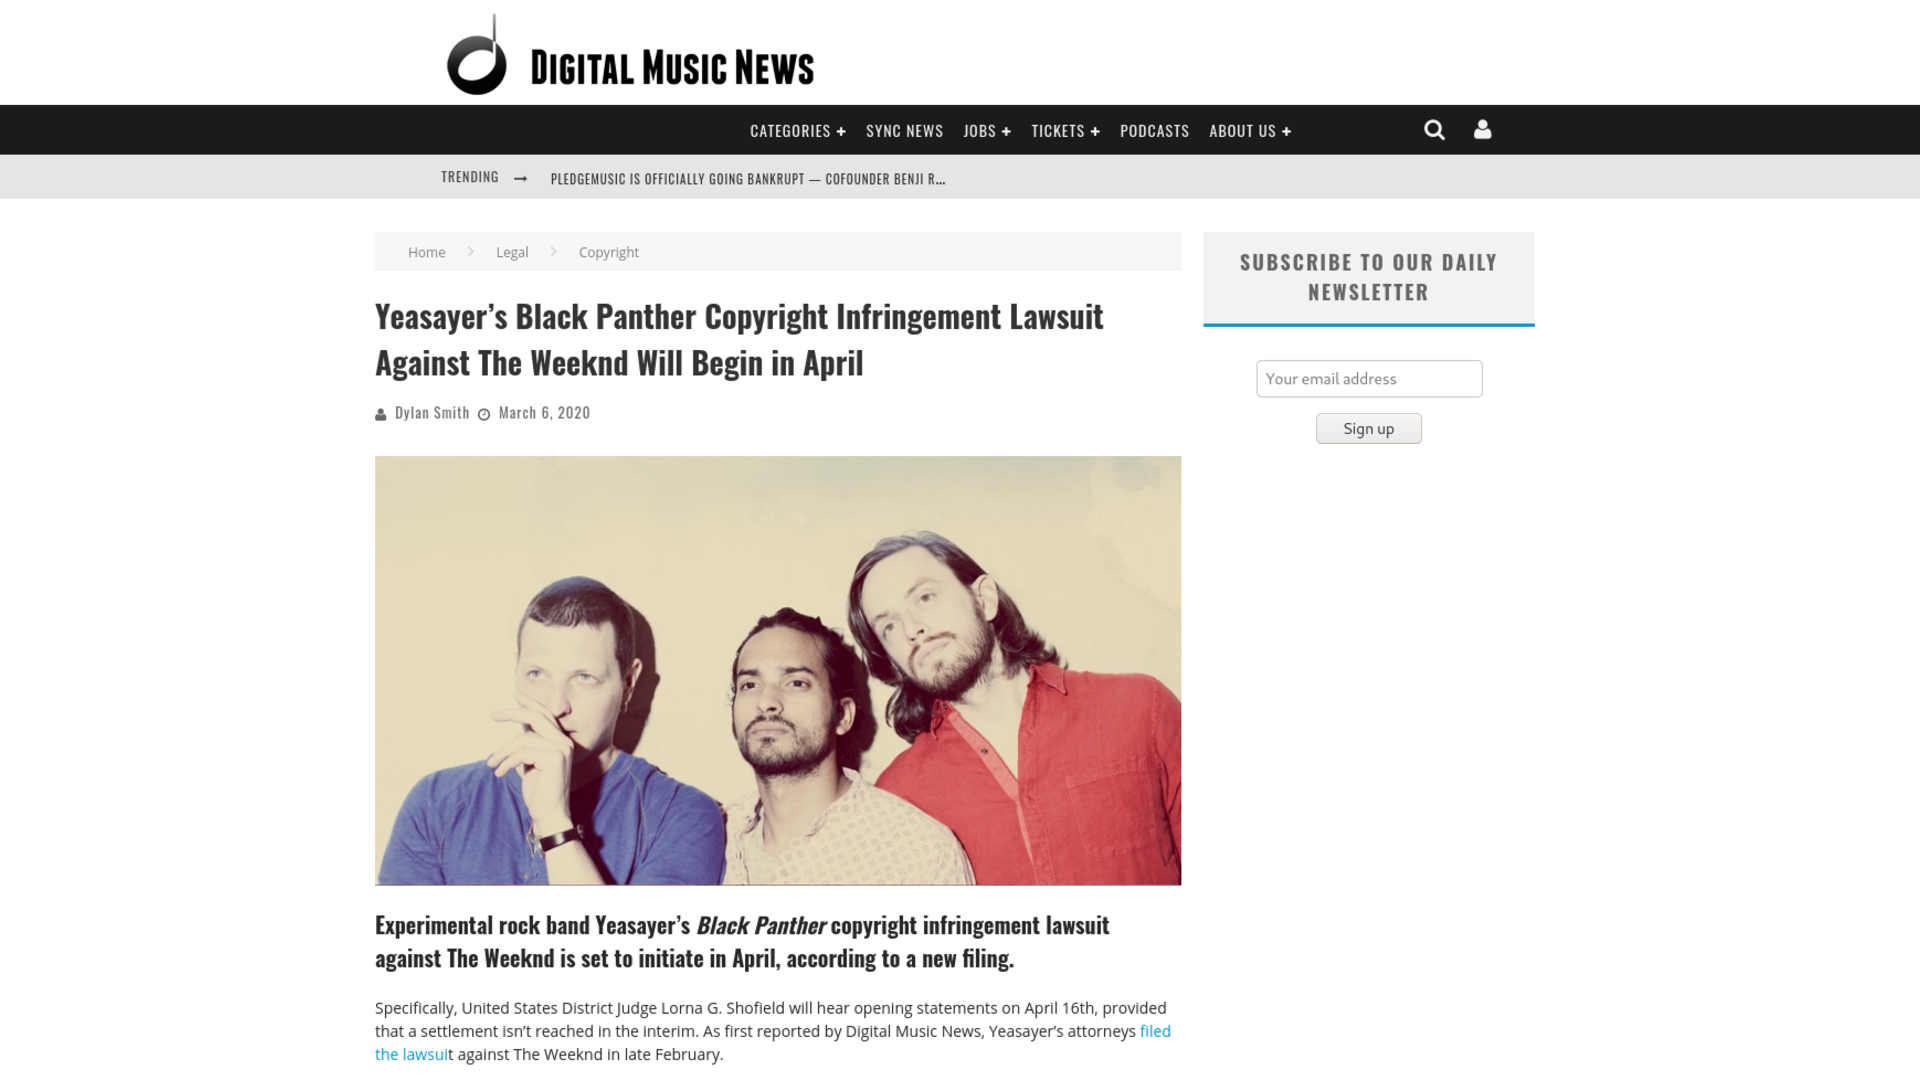 Fairness Rocks News Yeasayer's Black Panther Copyright Infringement Lawsuit Against The Weeknd Will Begin in April